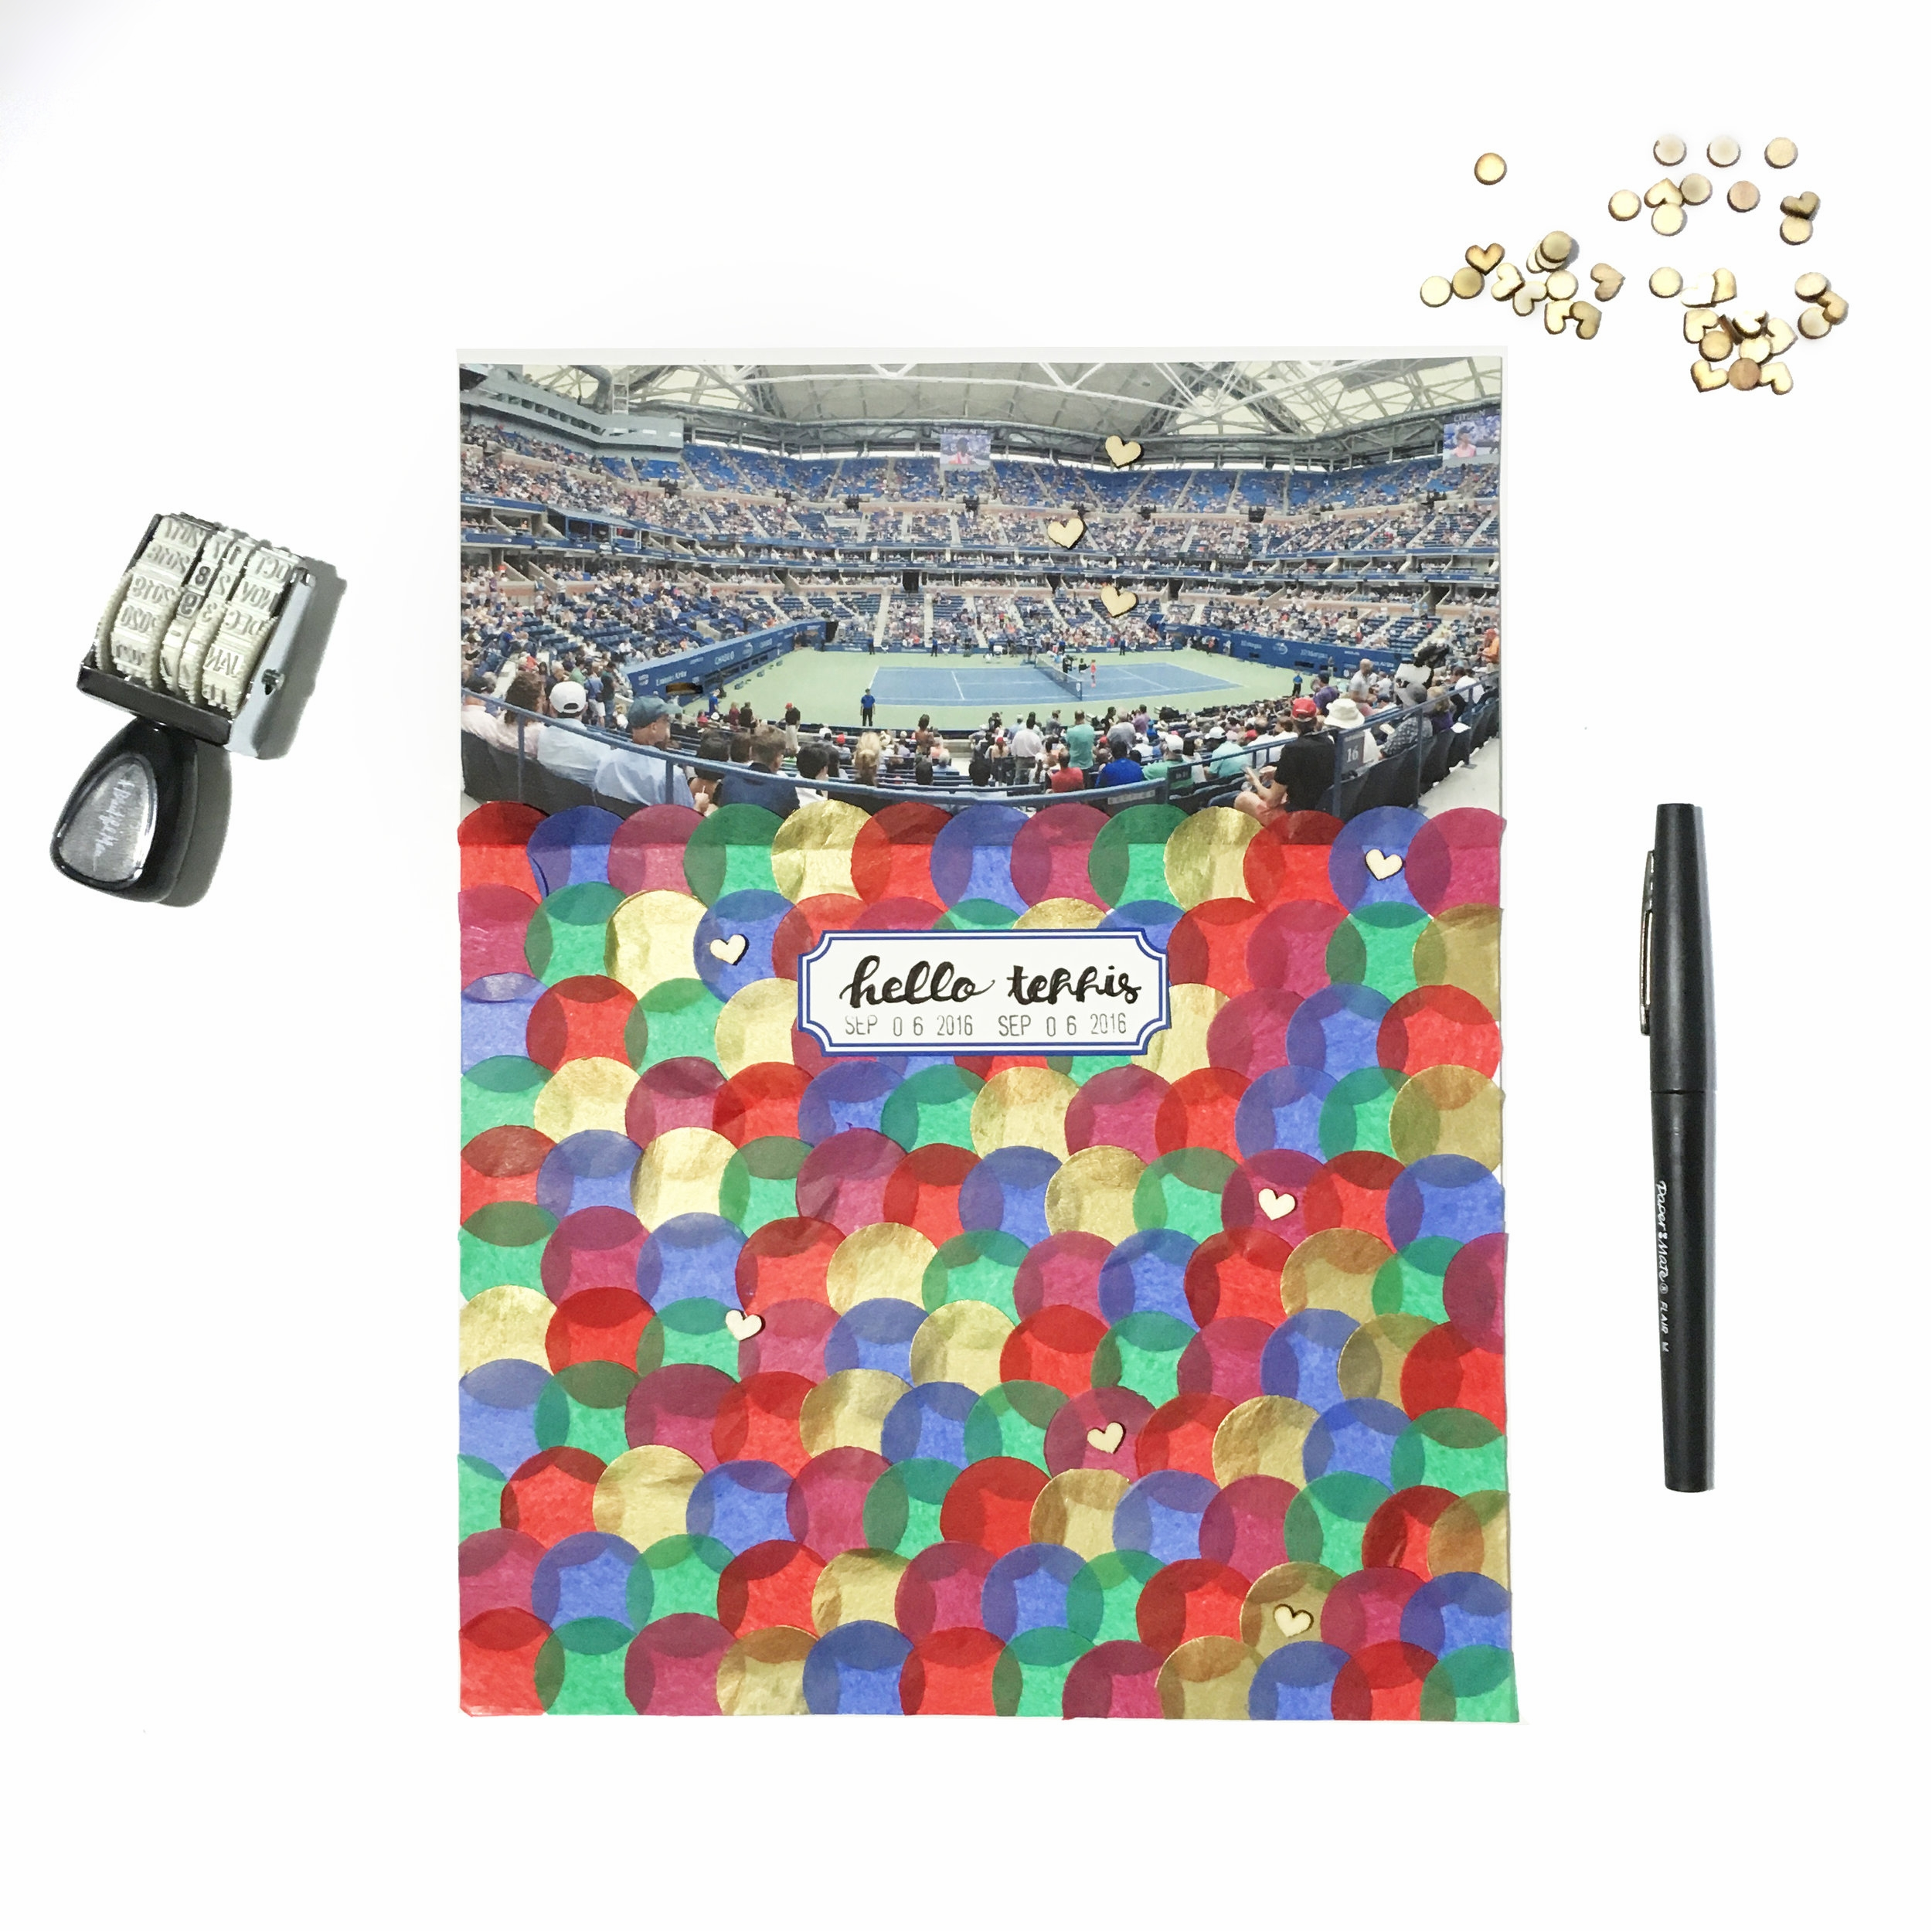 'Hello Tennis' Scrapbook Layout | The Paper Curator